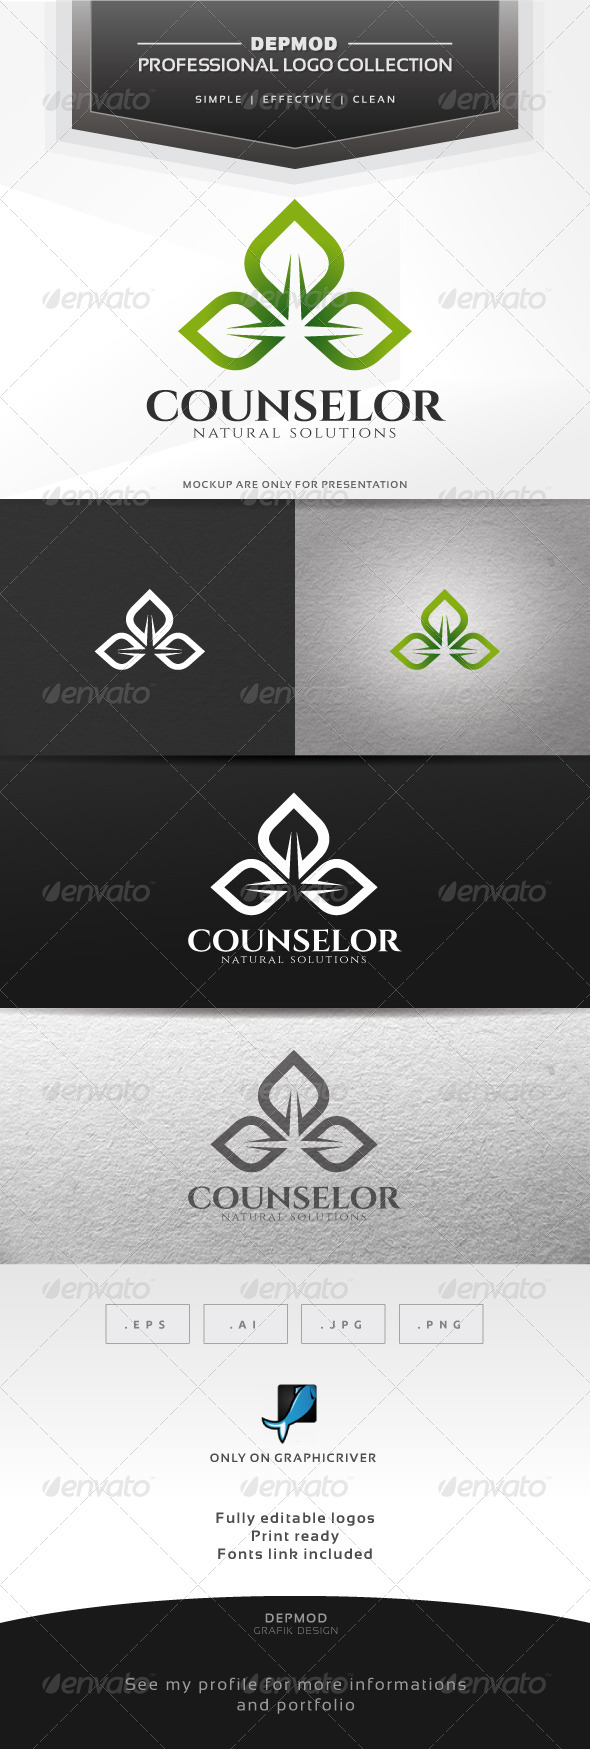 Counselor Logo - Nature Logo Templates